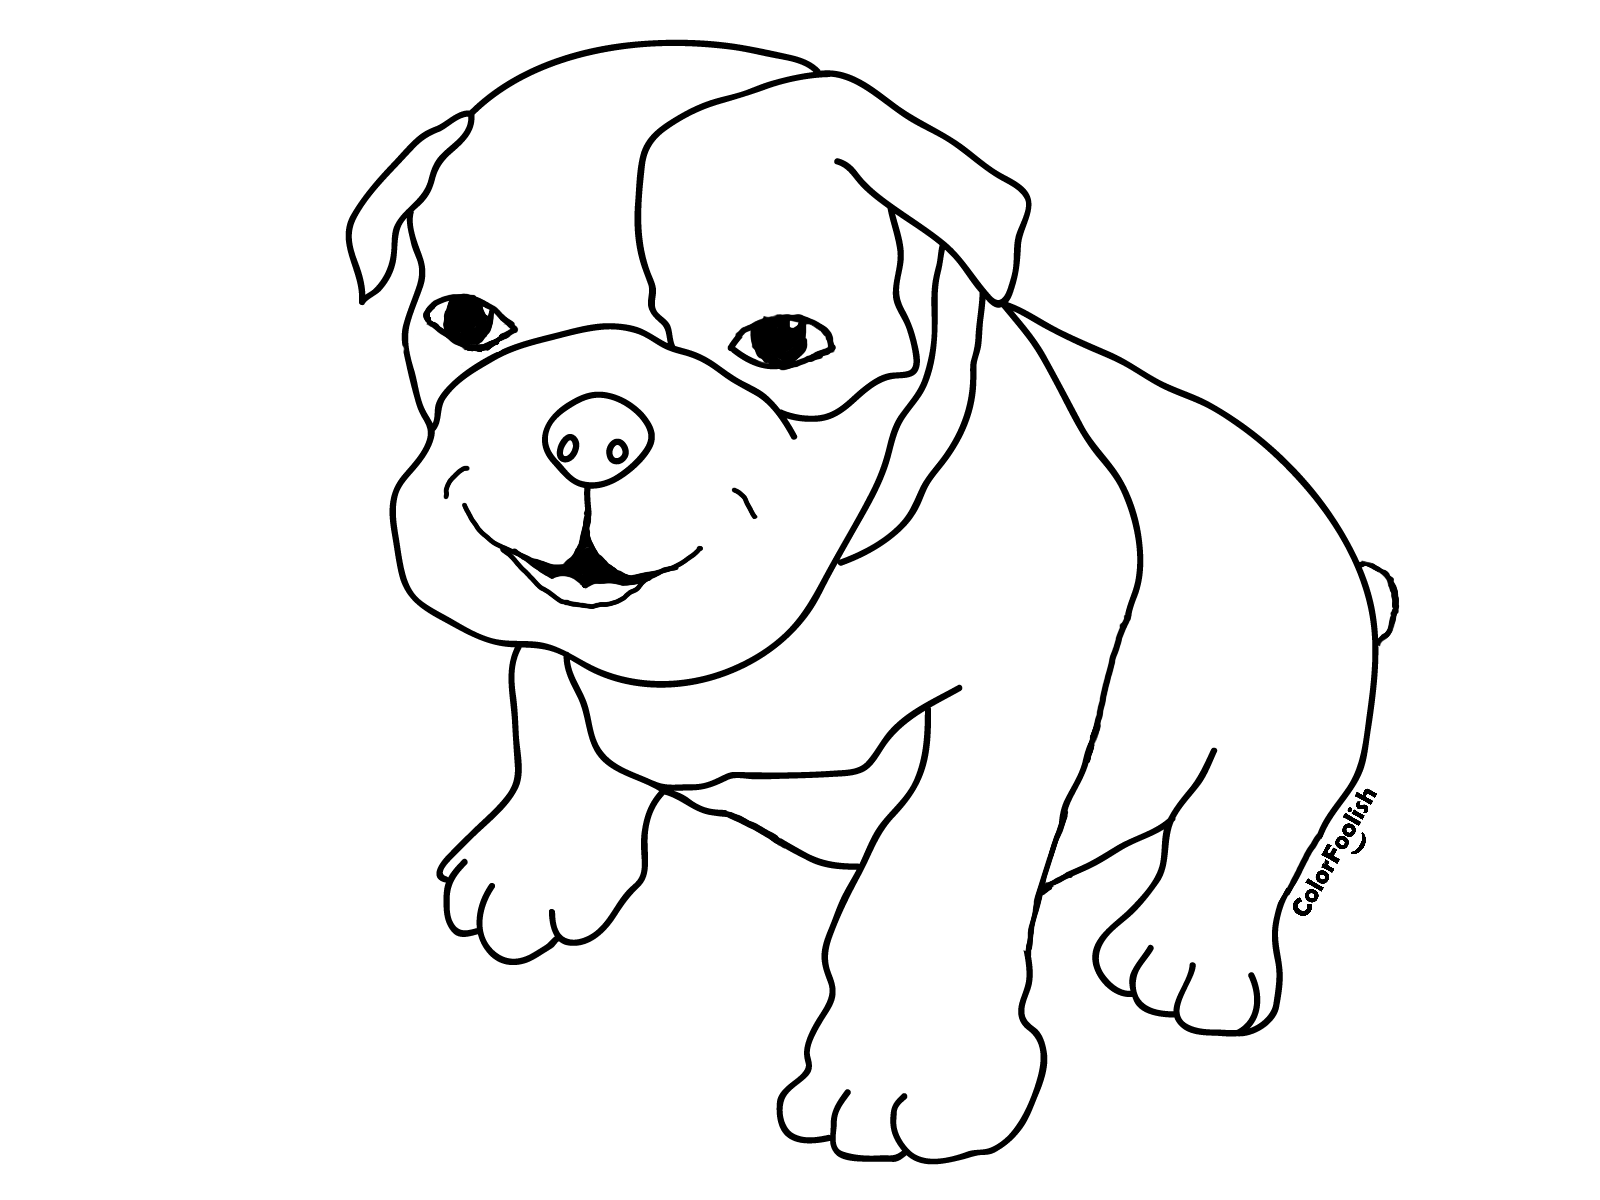 Coloring page of a smiling boxer puppy